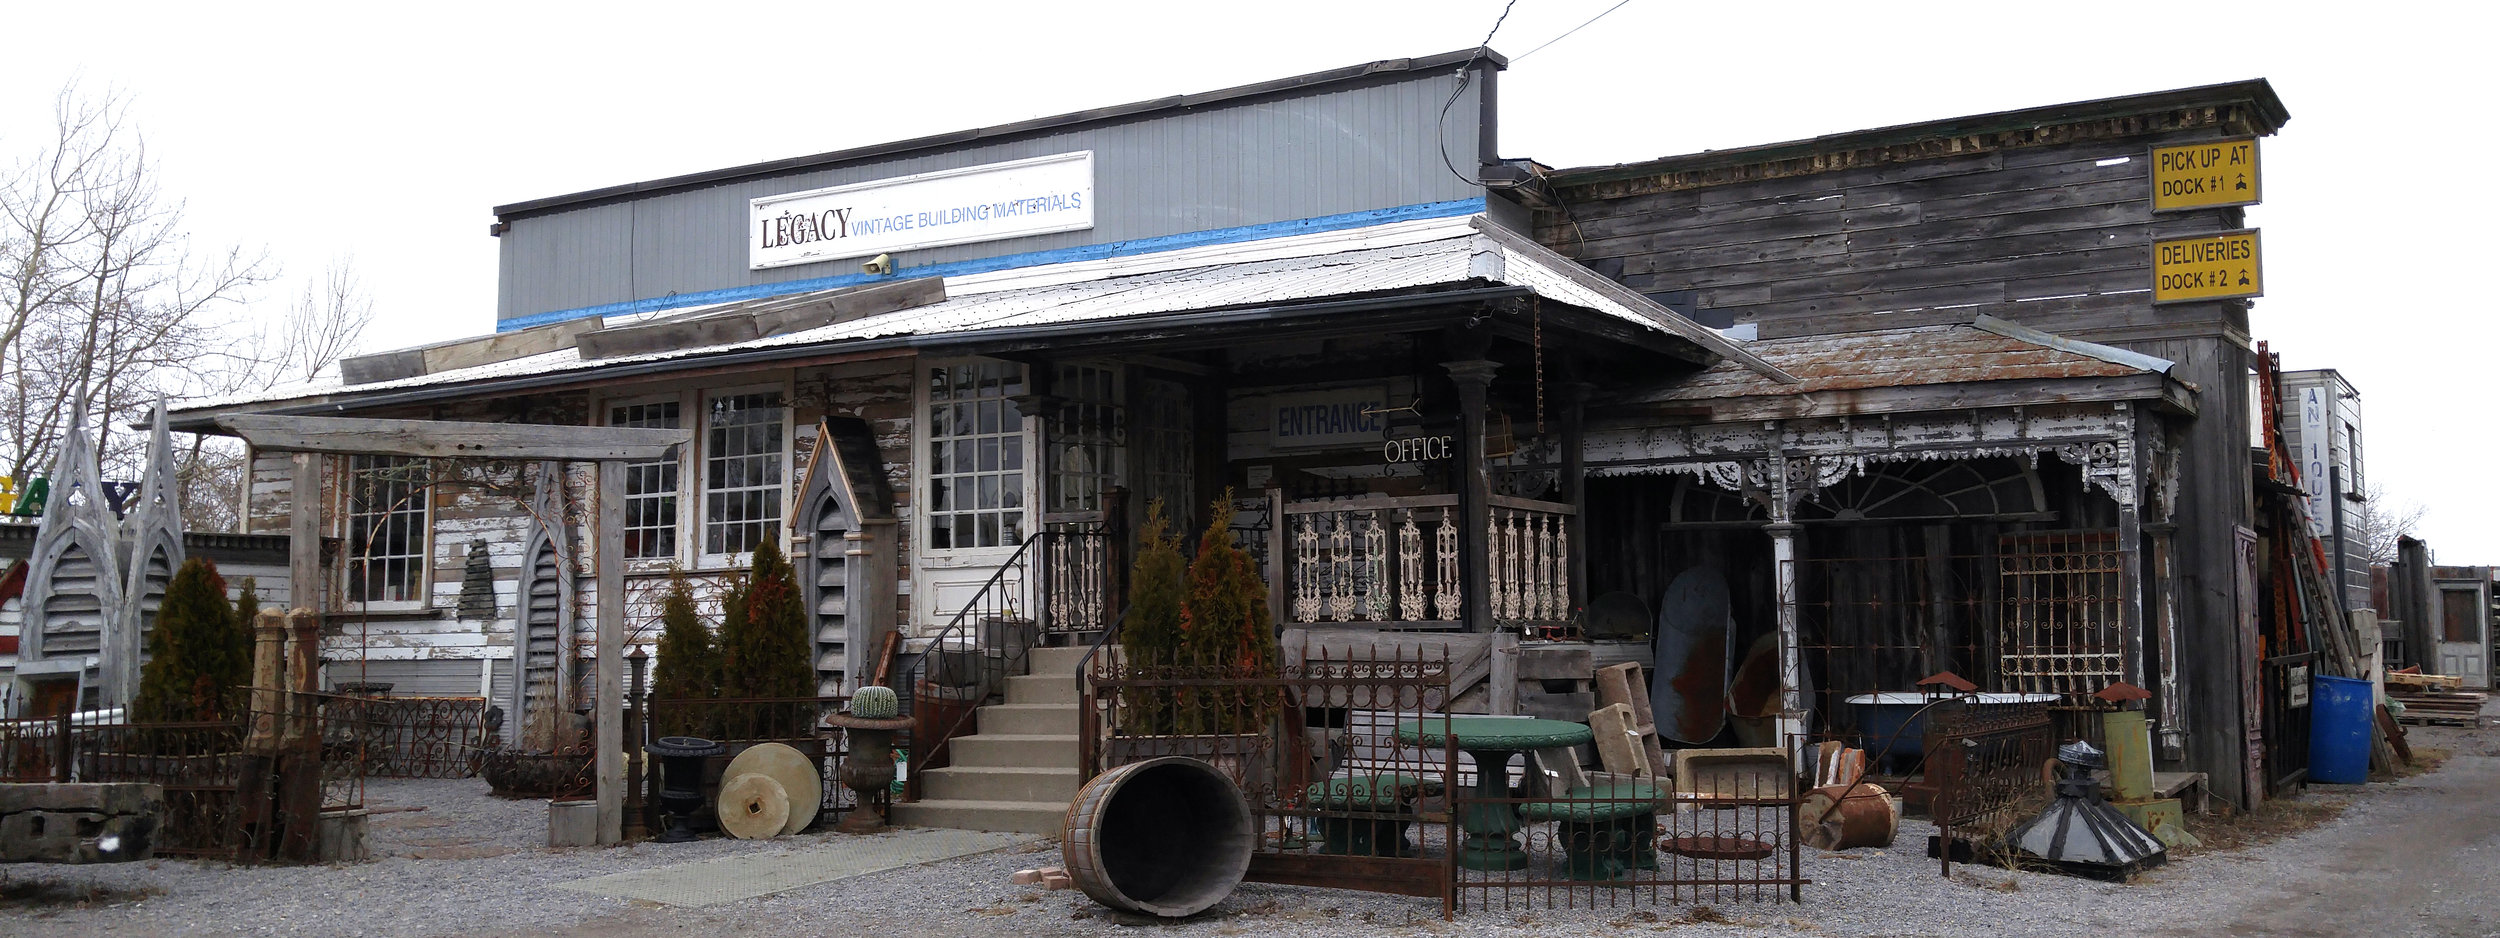 Legacy Vintage Building Materials and Antiques in Cobourg, Ontario.